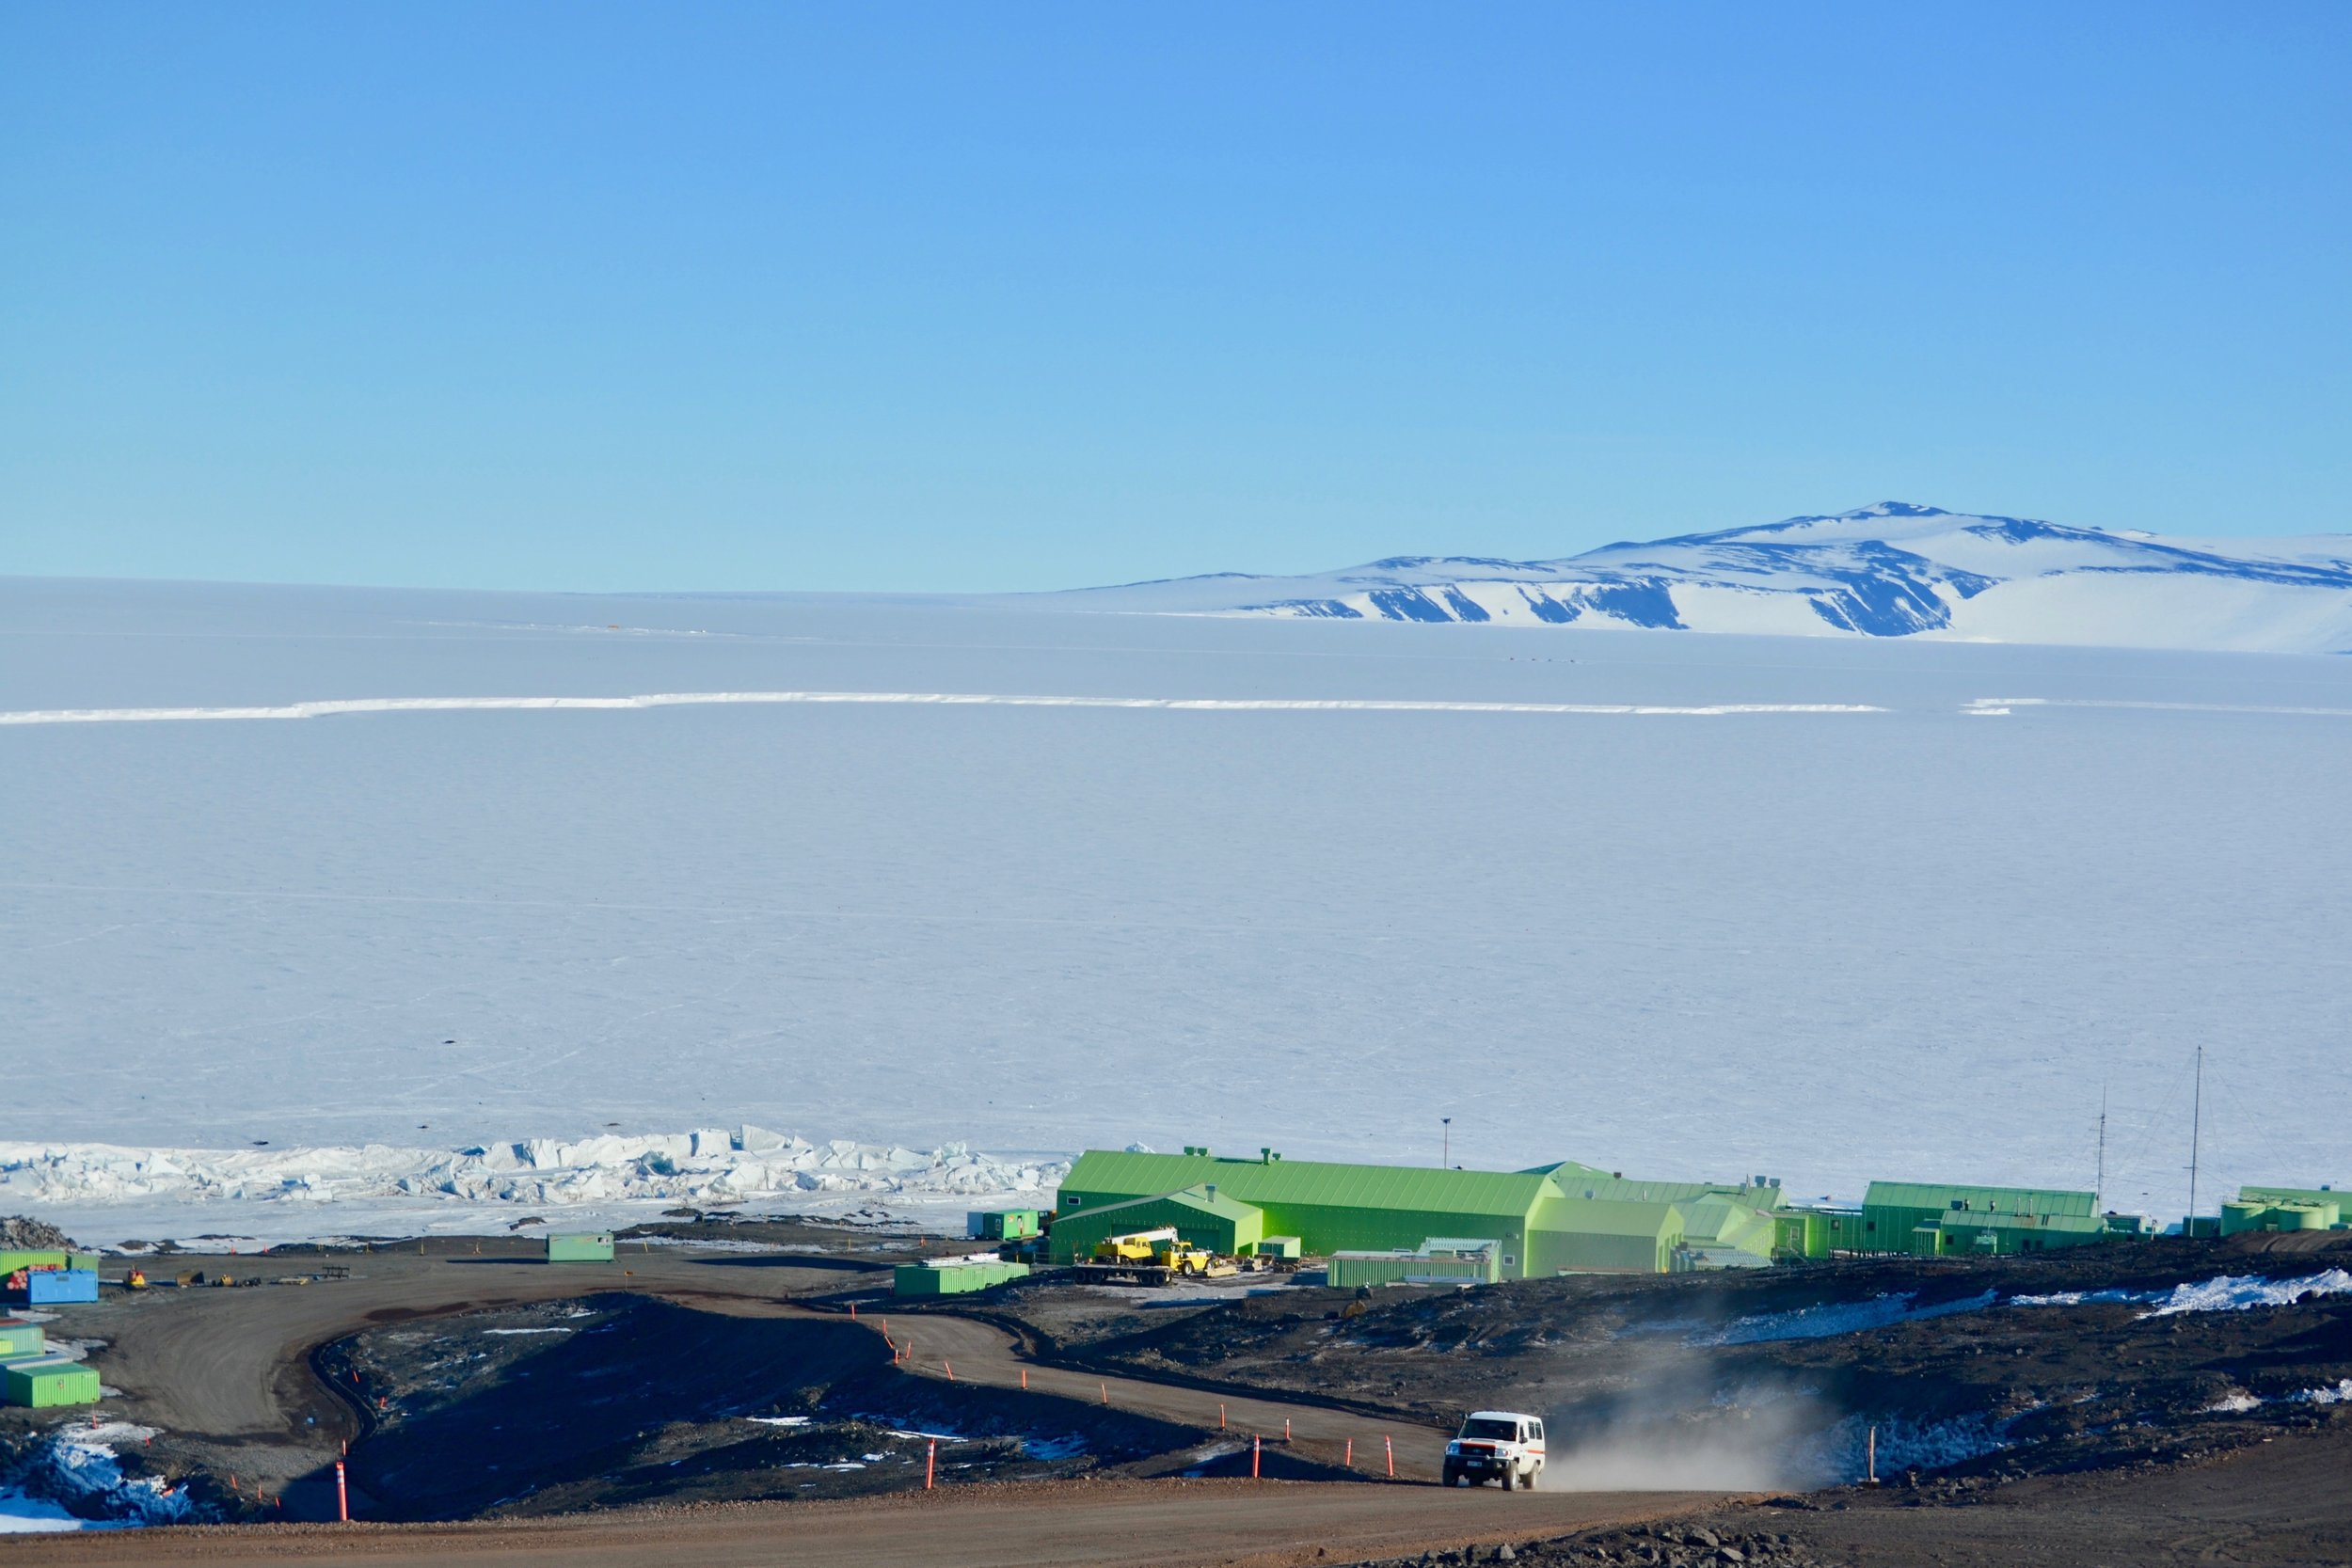 A view of Scott Base, the New Zealand station about 1.5 miles down the road from McMurdo